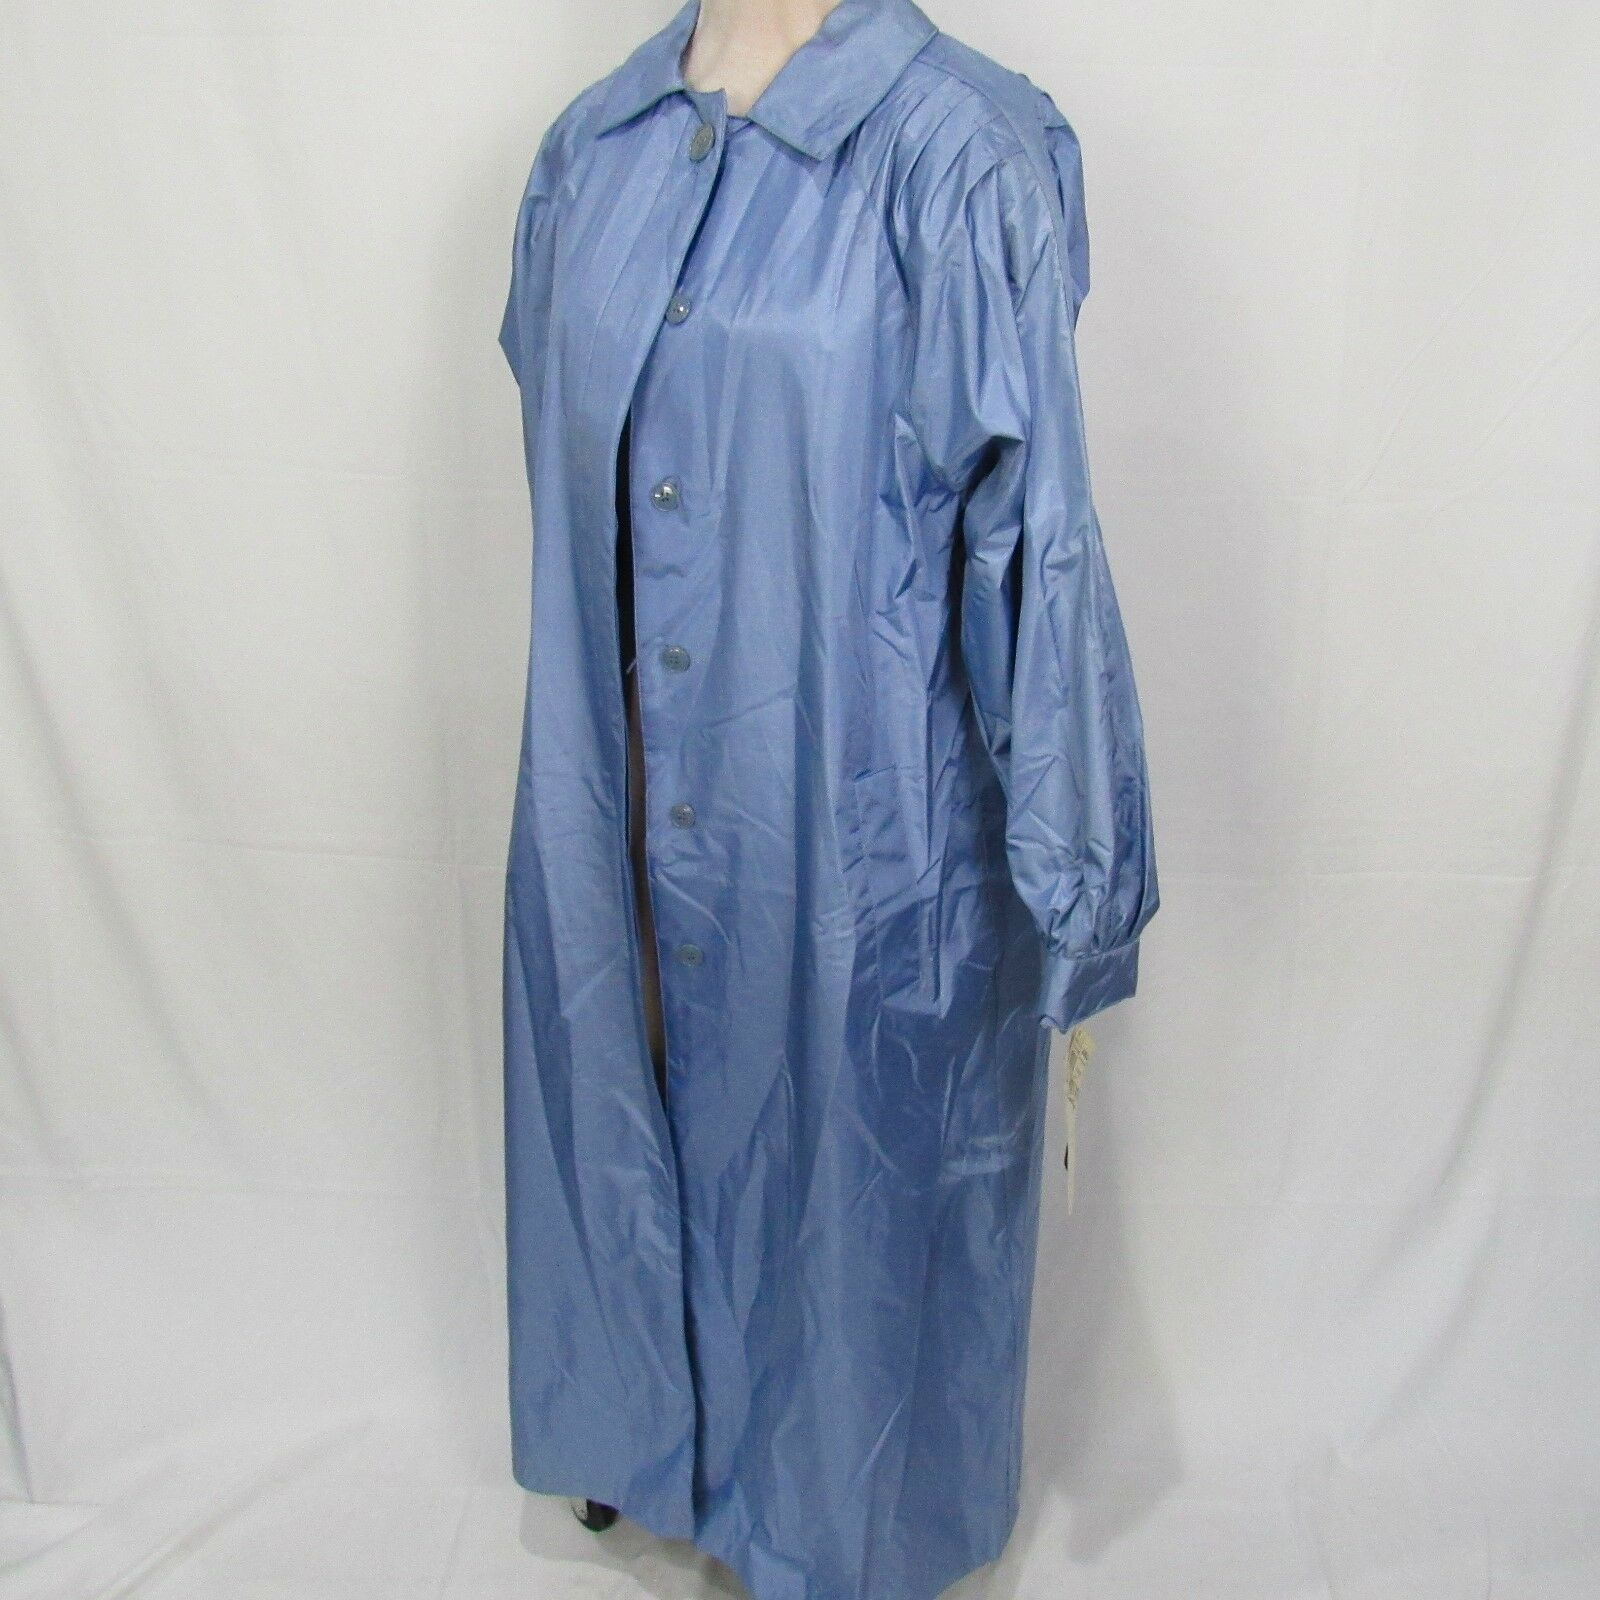 NWT Vintage Women's Elco bluee Trench Button Front Collared Rain Coat Size 12